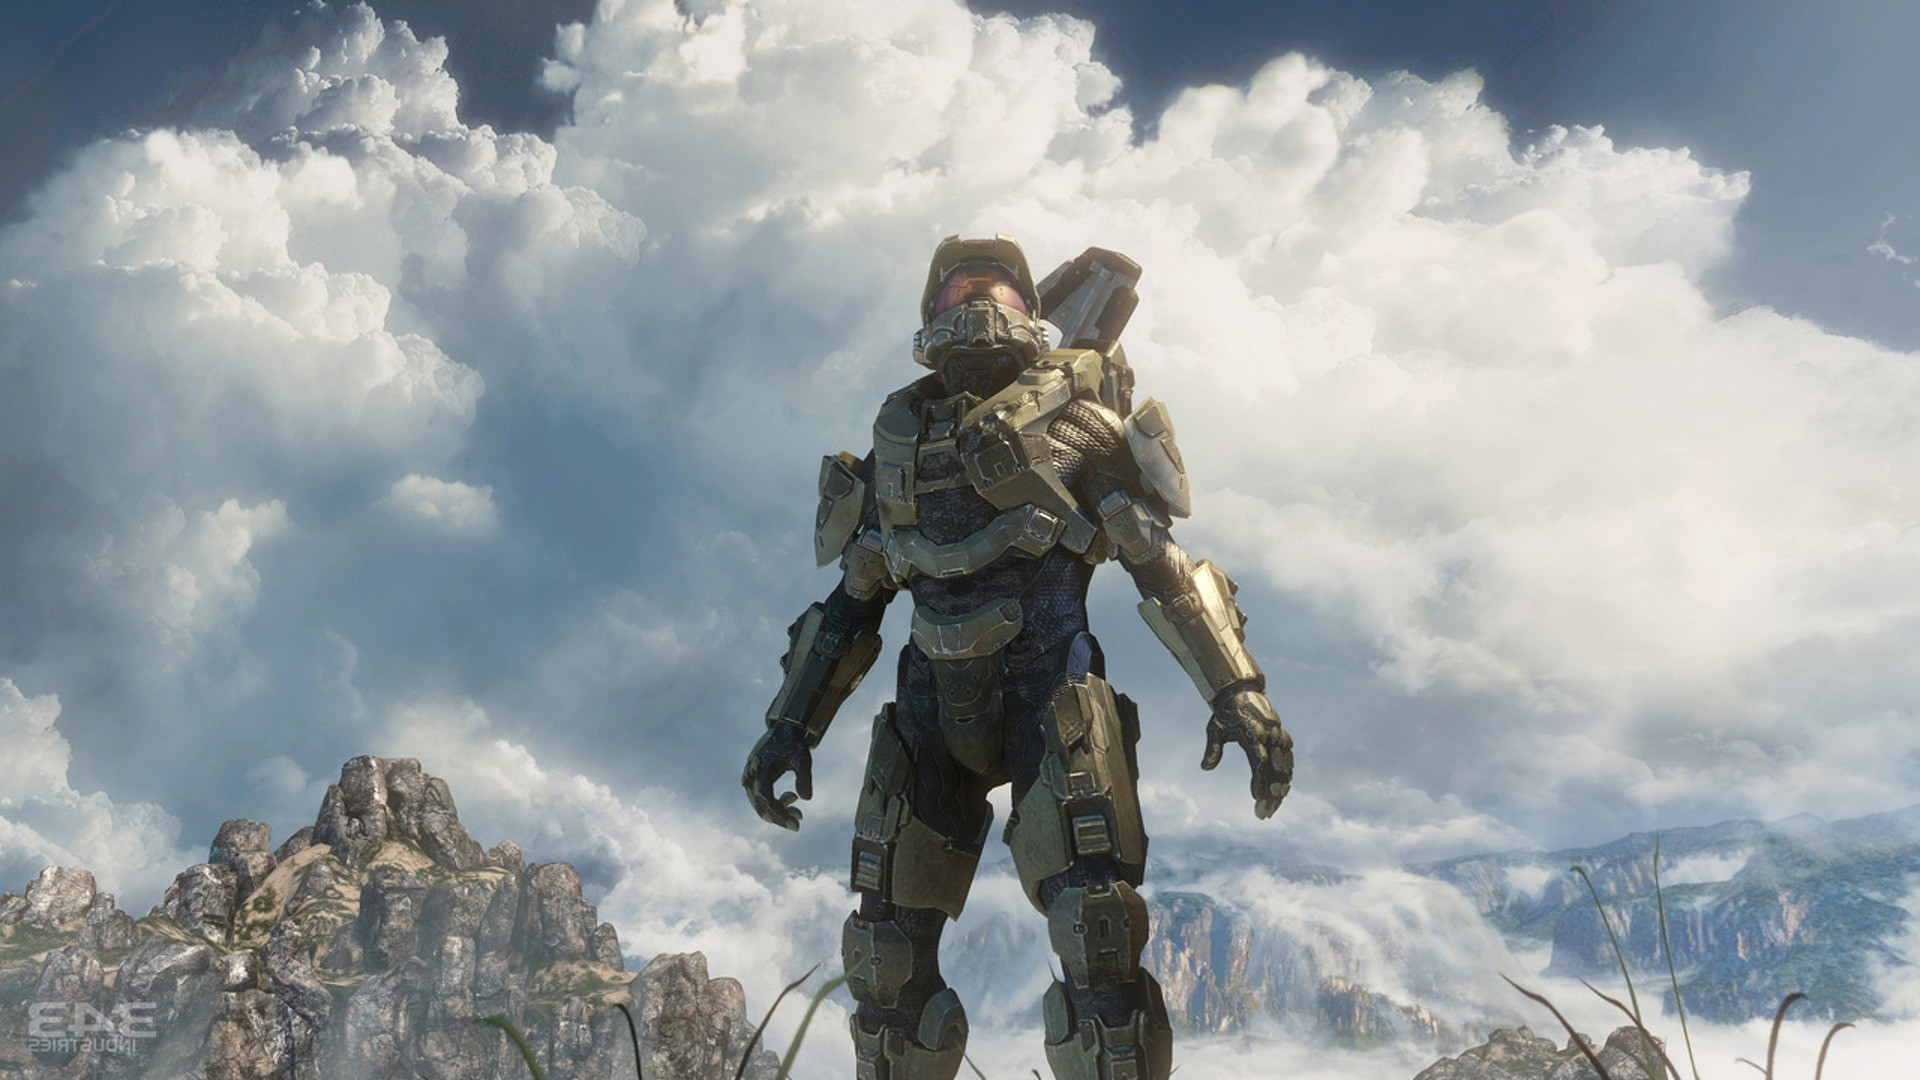 Halo 4 Master Chief Wallpaper (71+ pictures)